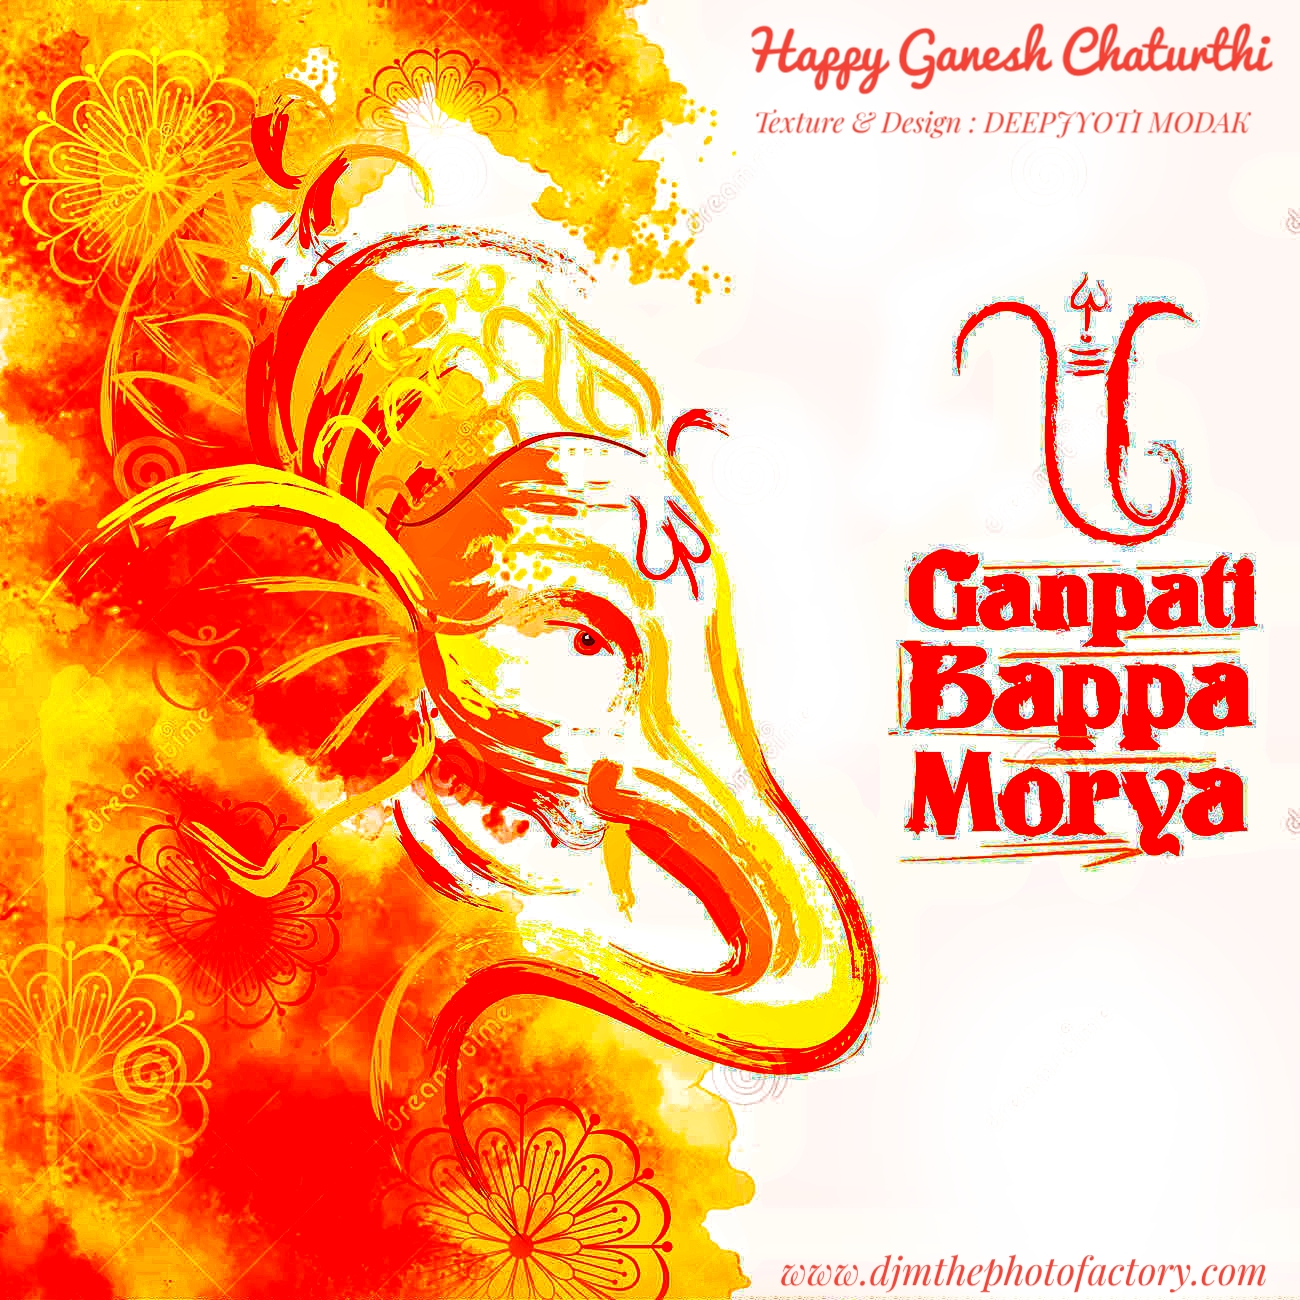 Ganesh Chaturthi 2019 Wishes Images, Photos, Quotes, Messages, Status, Wallpapers